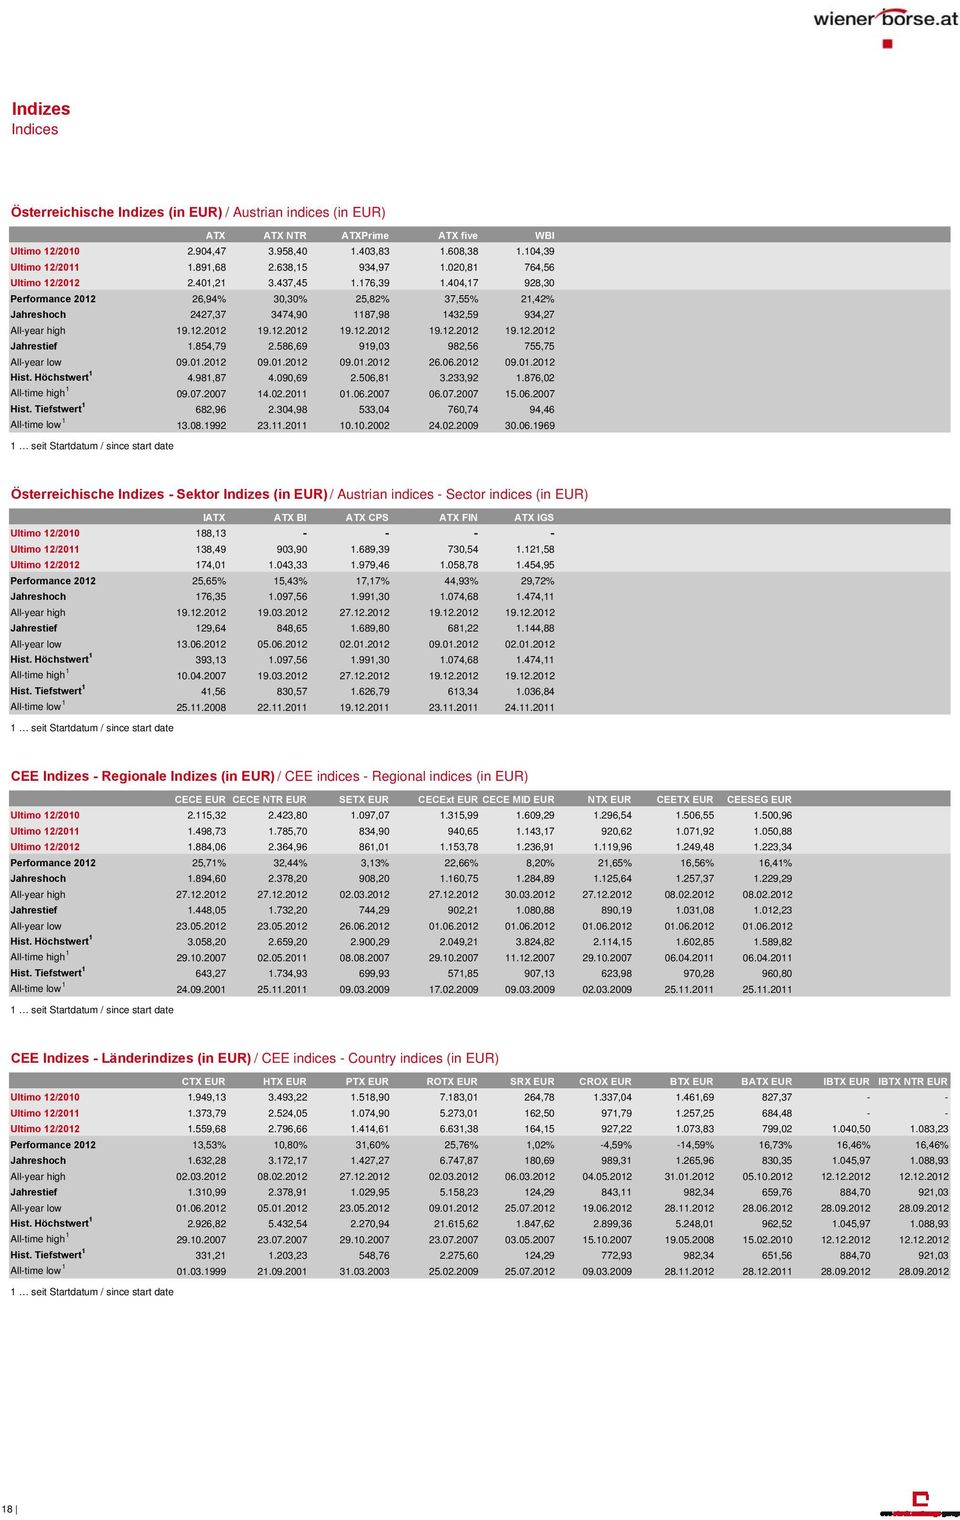 404,17 928,30 Performance 2012 26,94% 30,30% 25,82% 37,55% 21,42% Jahreshoch 2427,37 3474,90 1187,98 1432,59 934,27 All-year high 19.12.2012 19.12.2012 19.12.2012 19.12.2012 19.12.2012 Jahrestief 1.